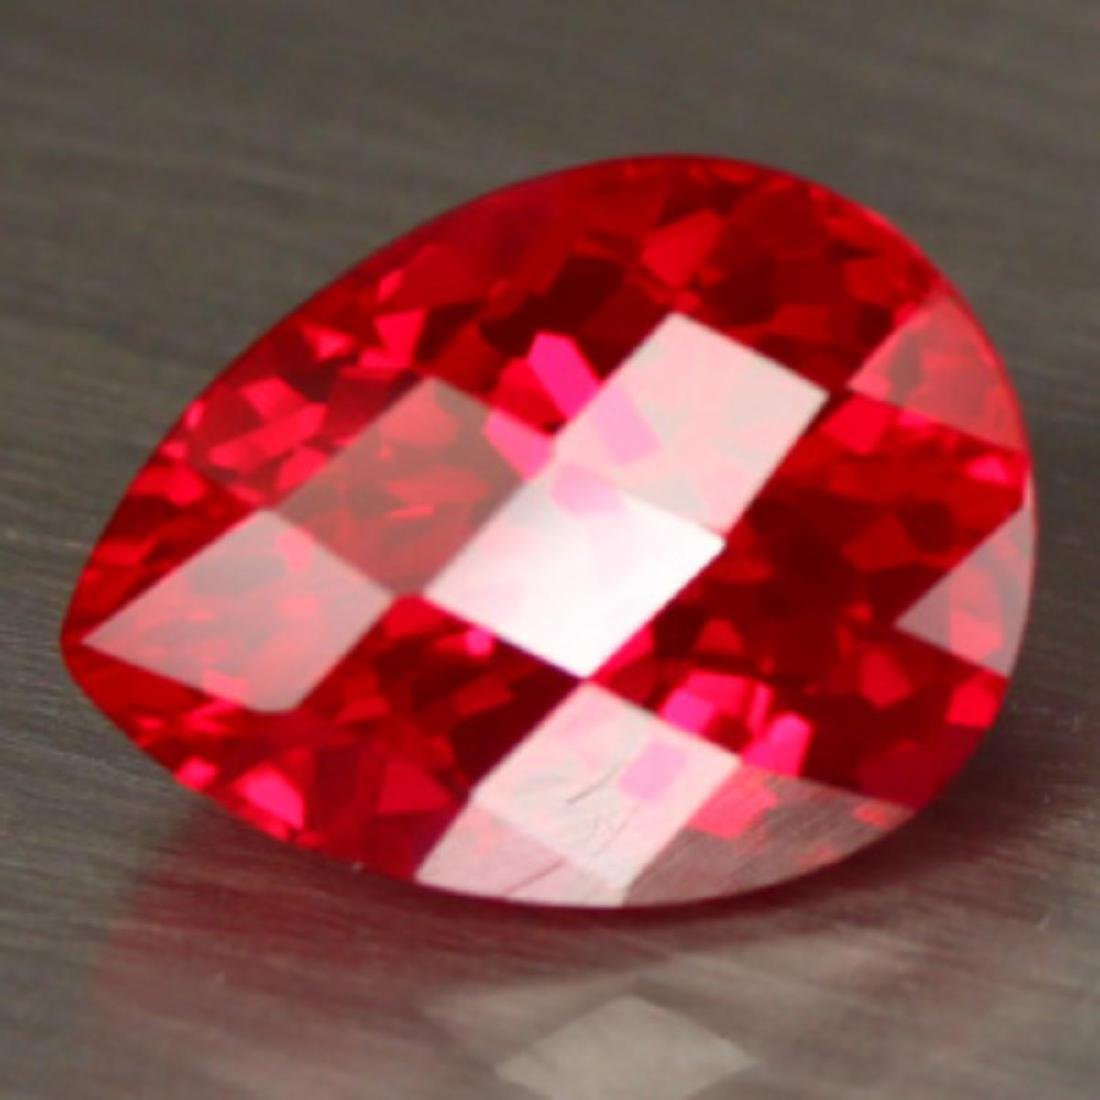 Natural Red Topaz 16.99 Carats - VVS